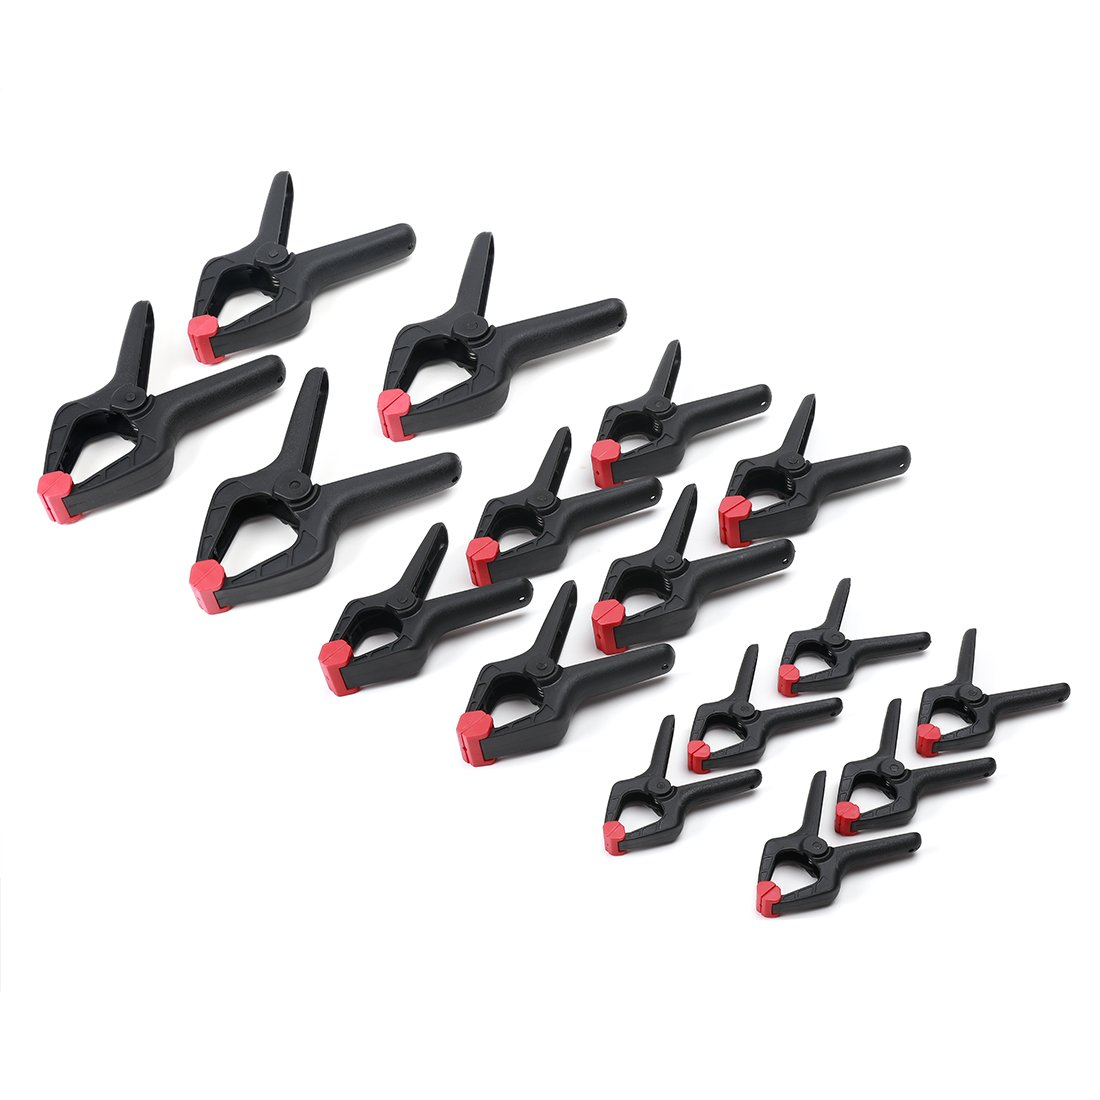 WORKPRO 16-Piece Spring Clamp